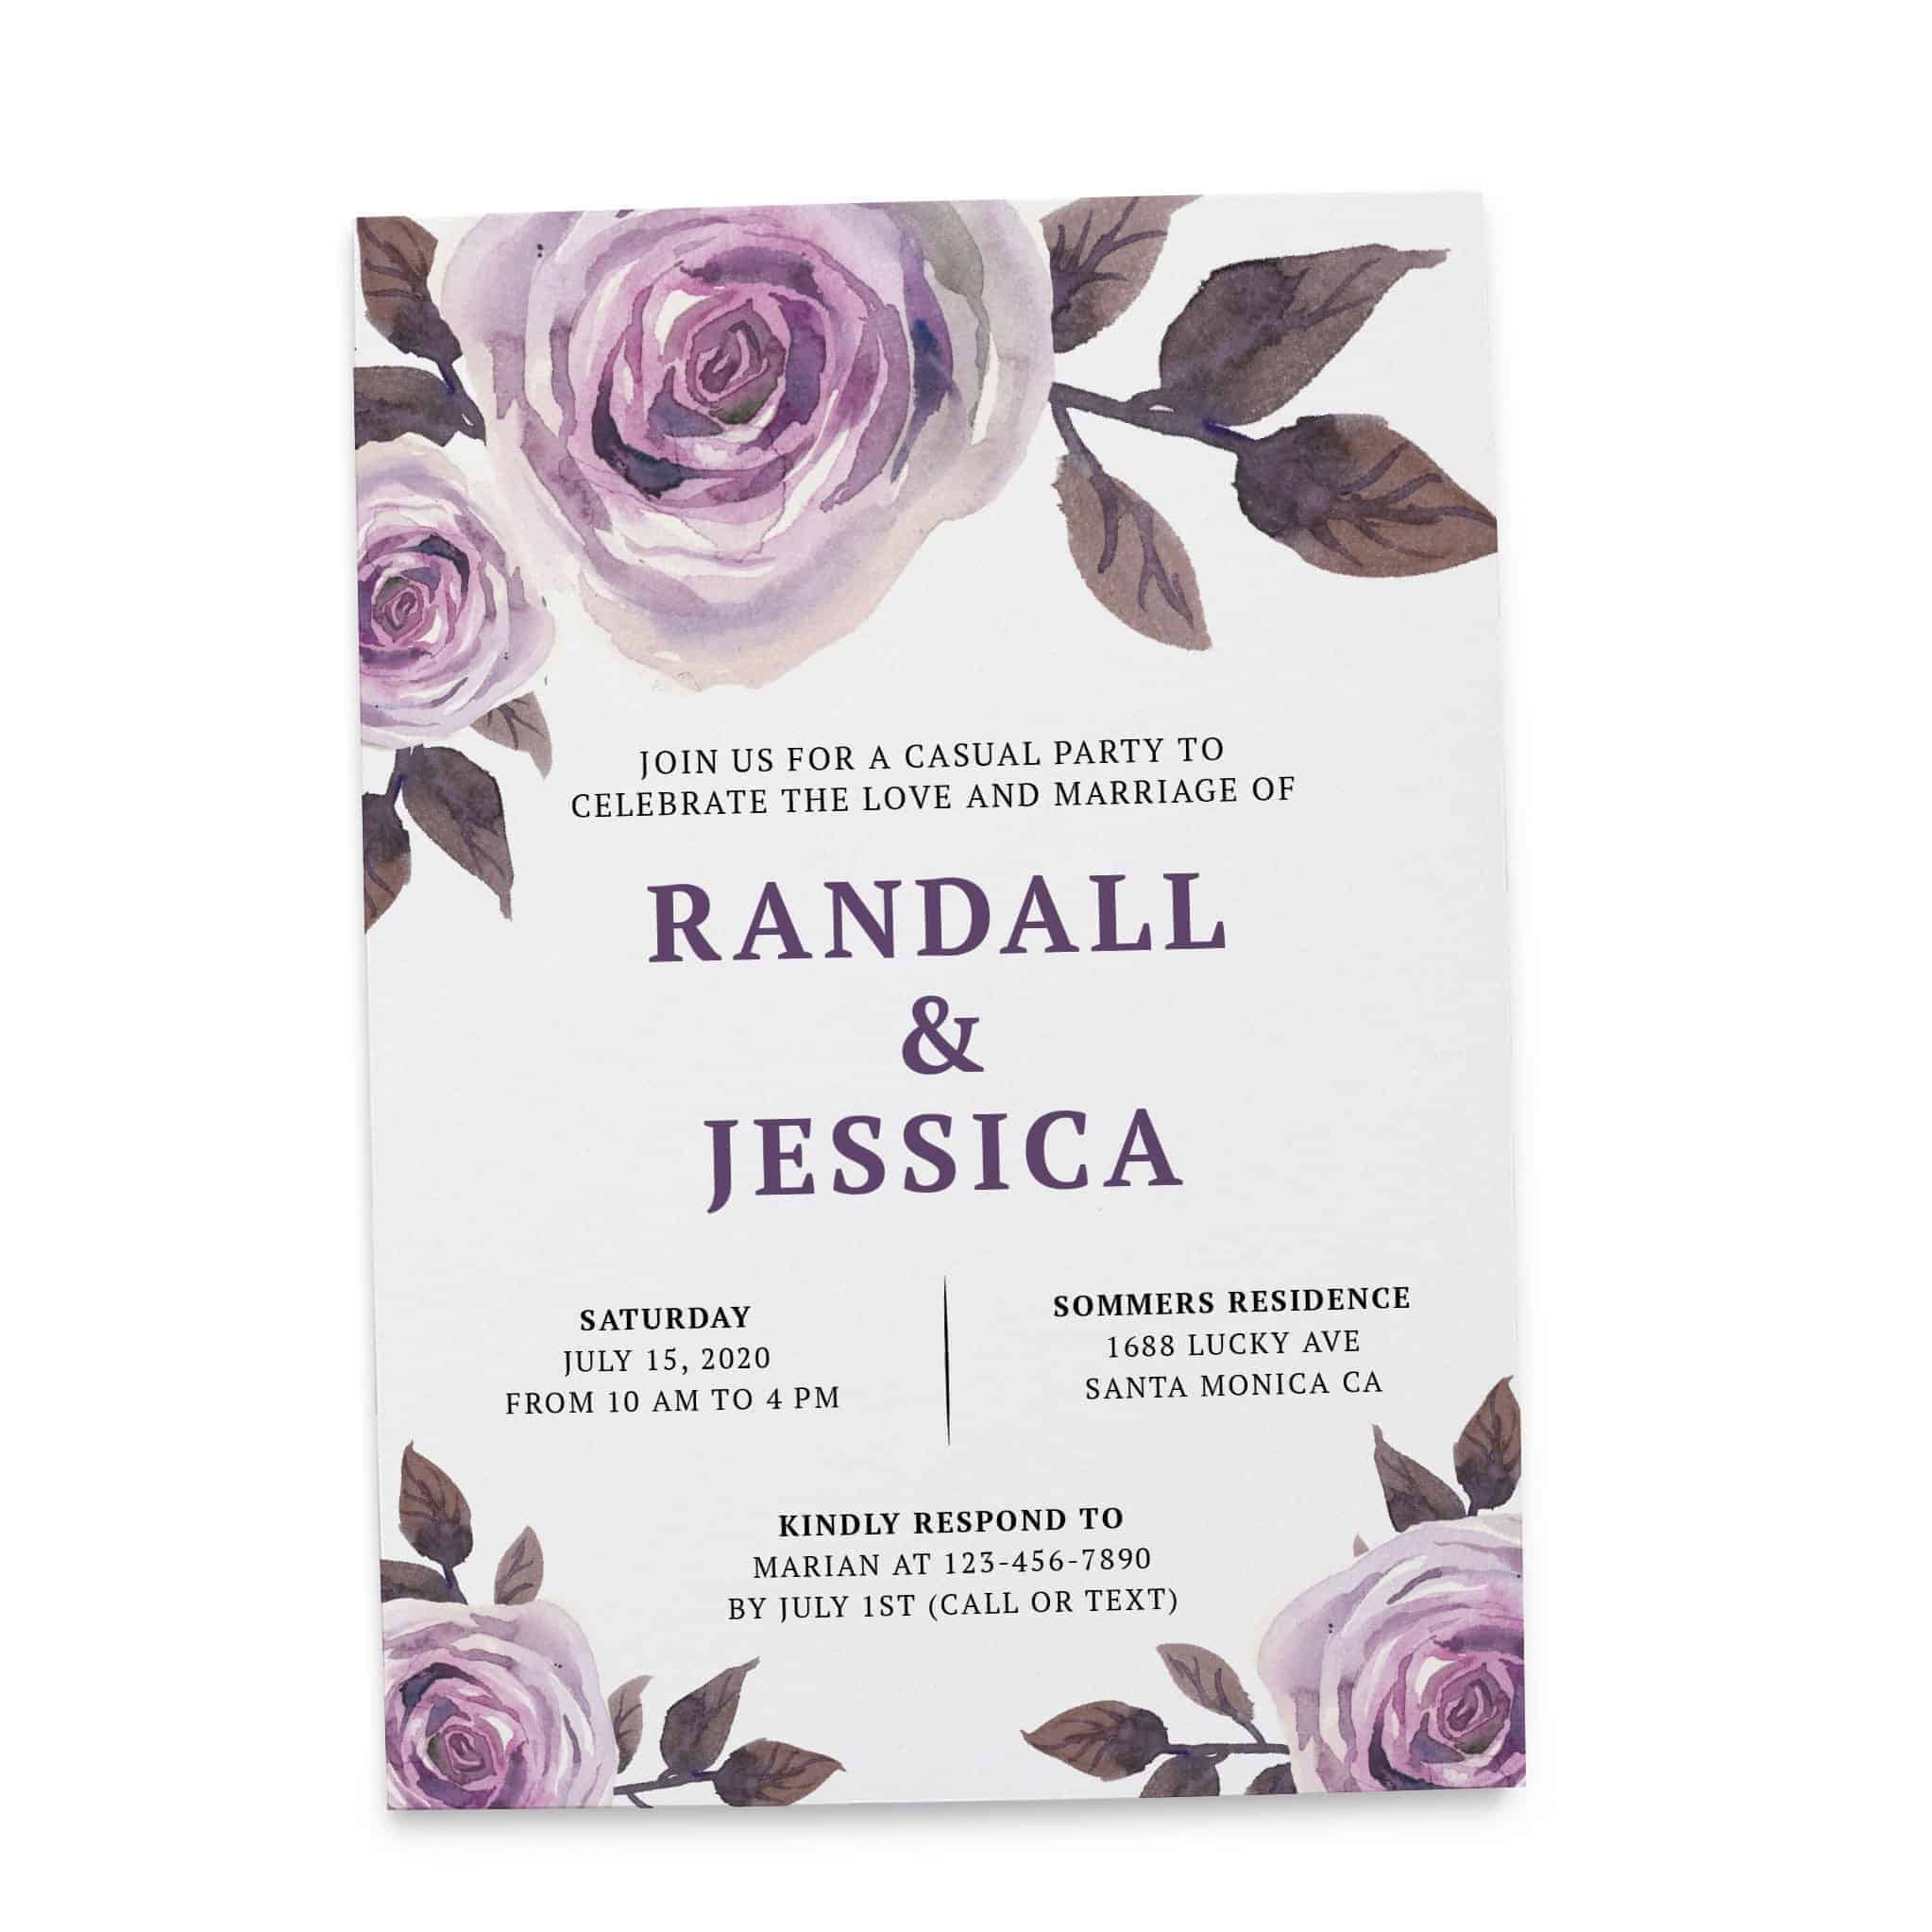 Casual Wedding Reception Floral Cards - Marriage Reception Card, Just Send us Your Details , Bright Floral Design